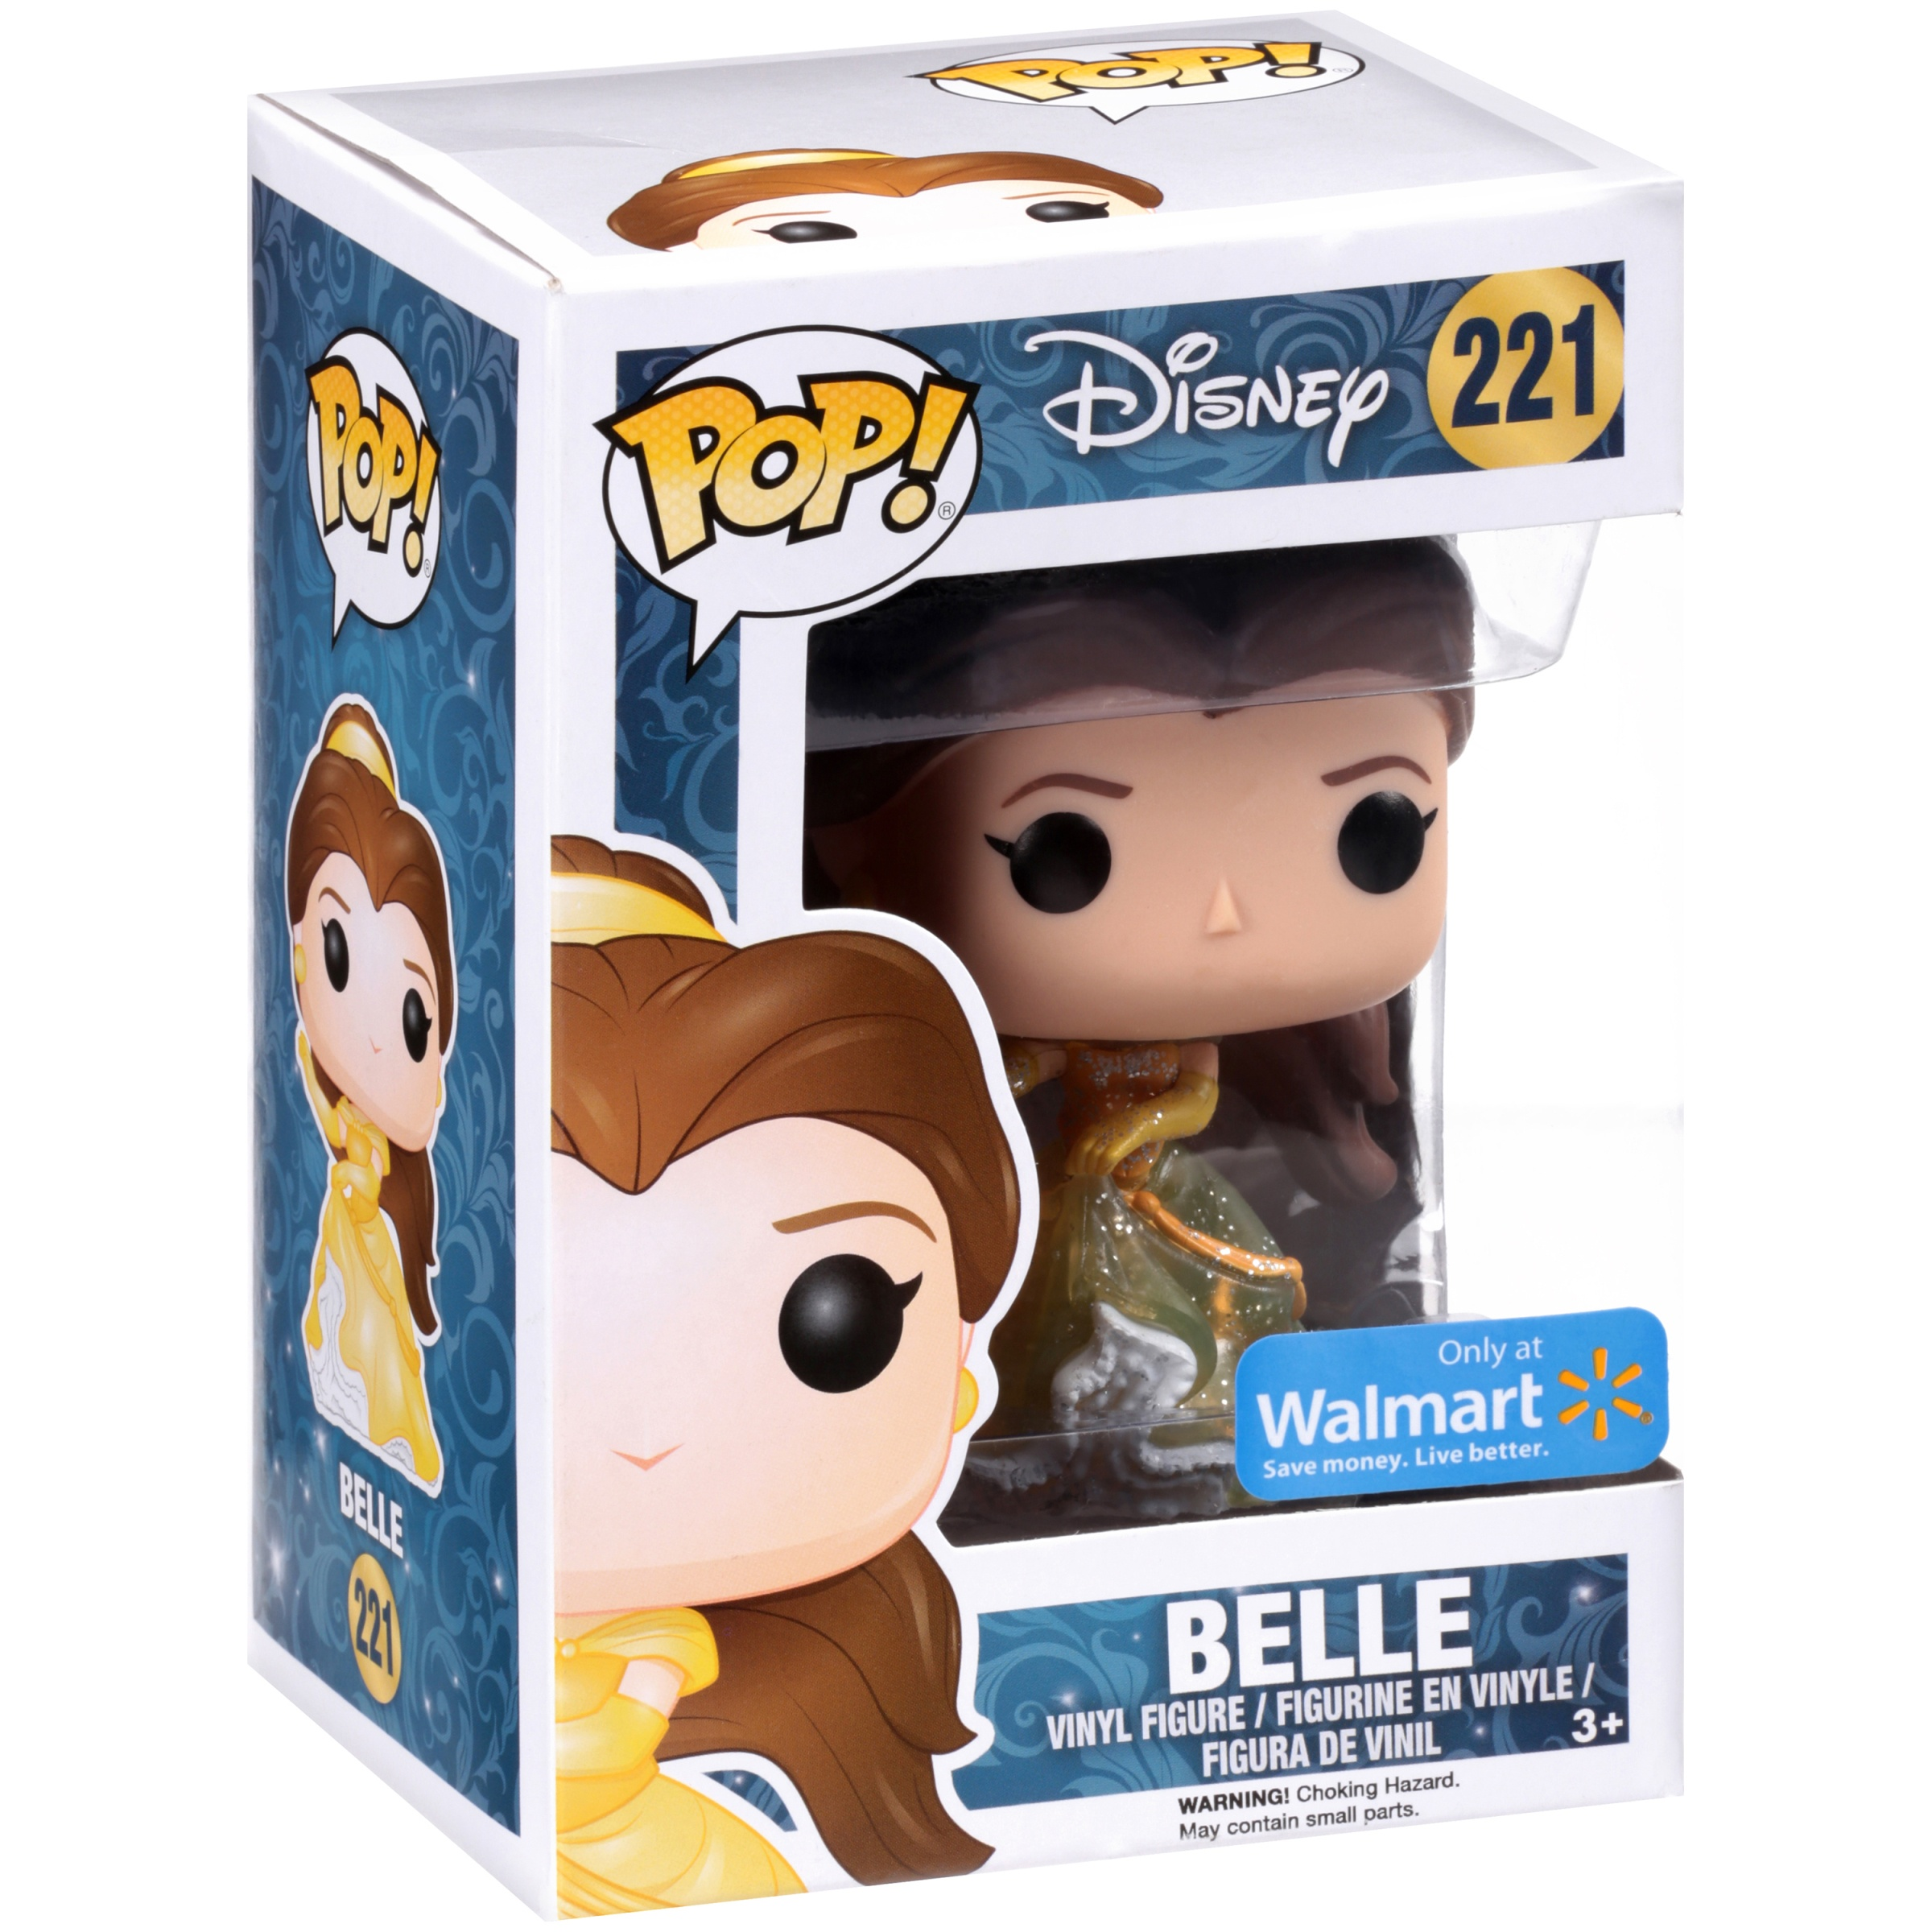 Pop!® Disney Belle Vinyl Figure